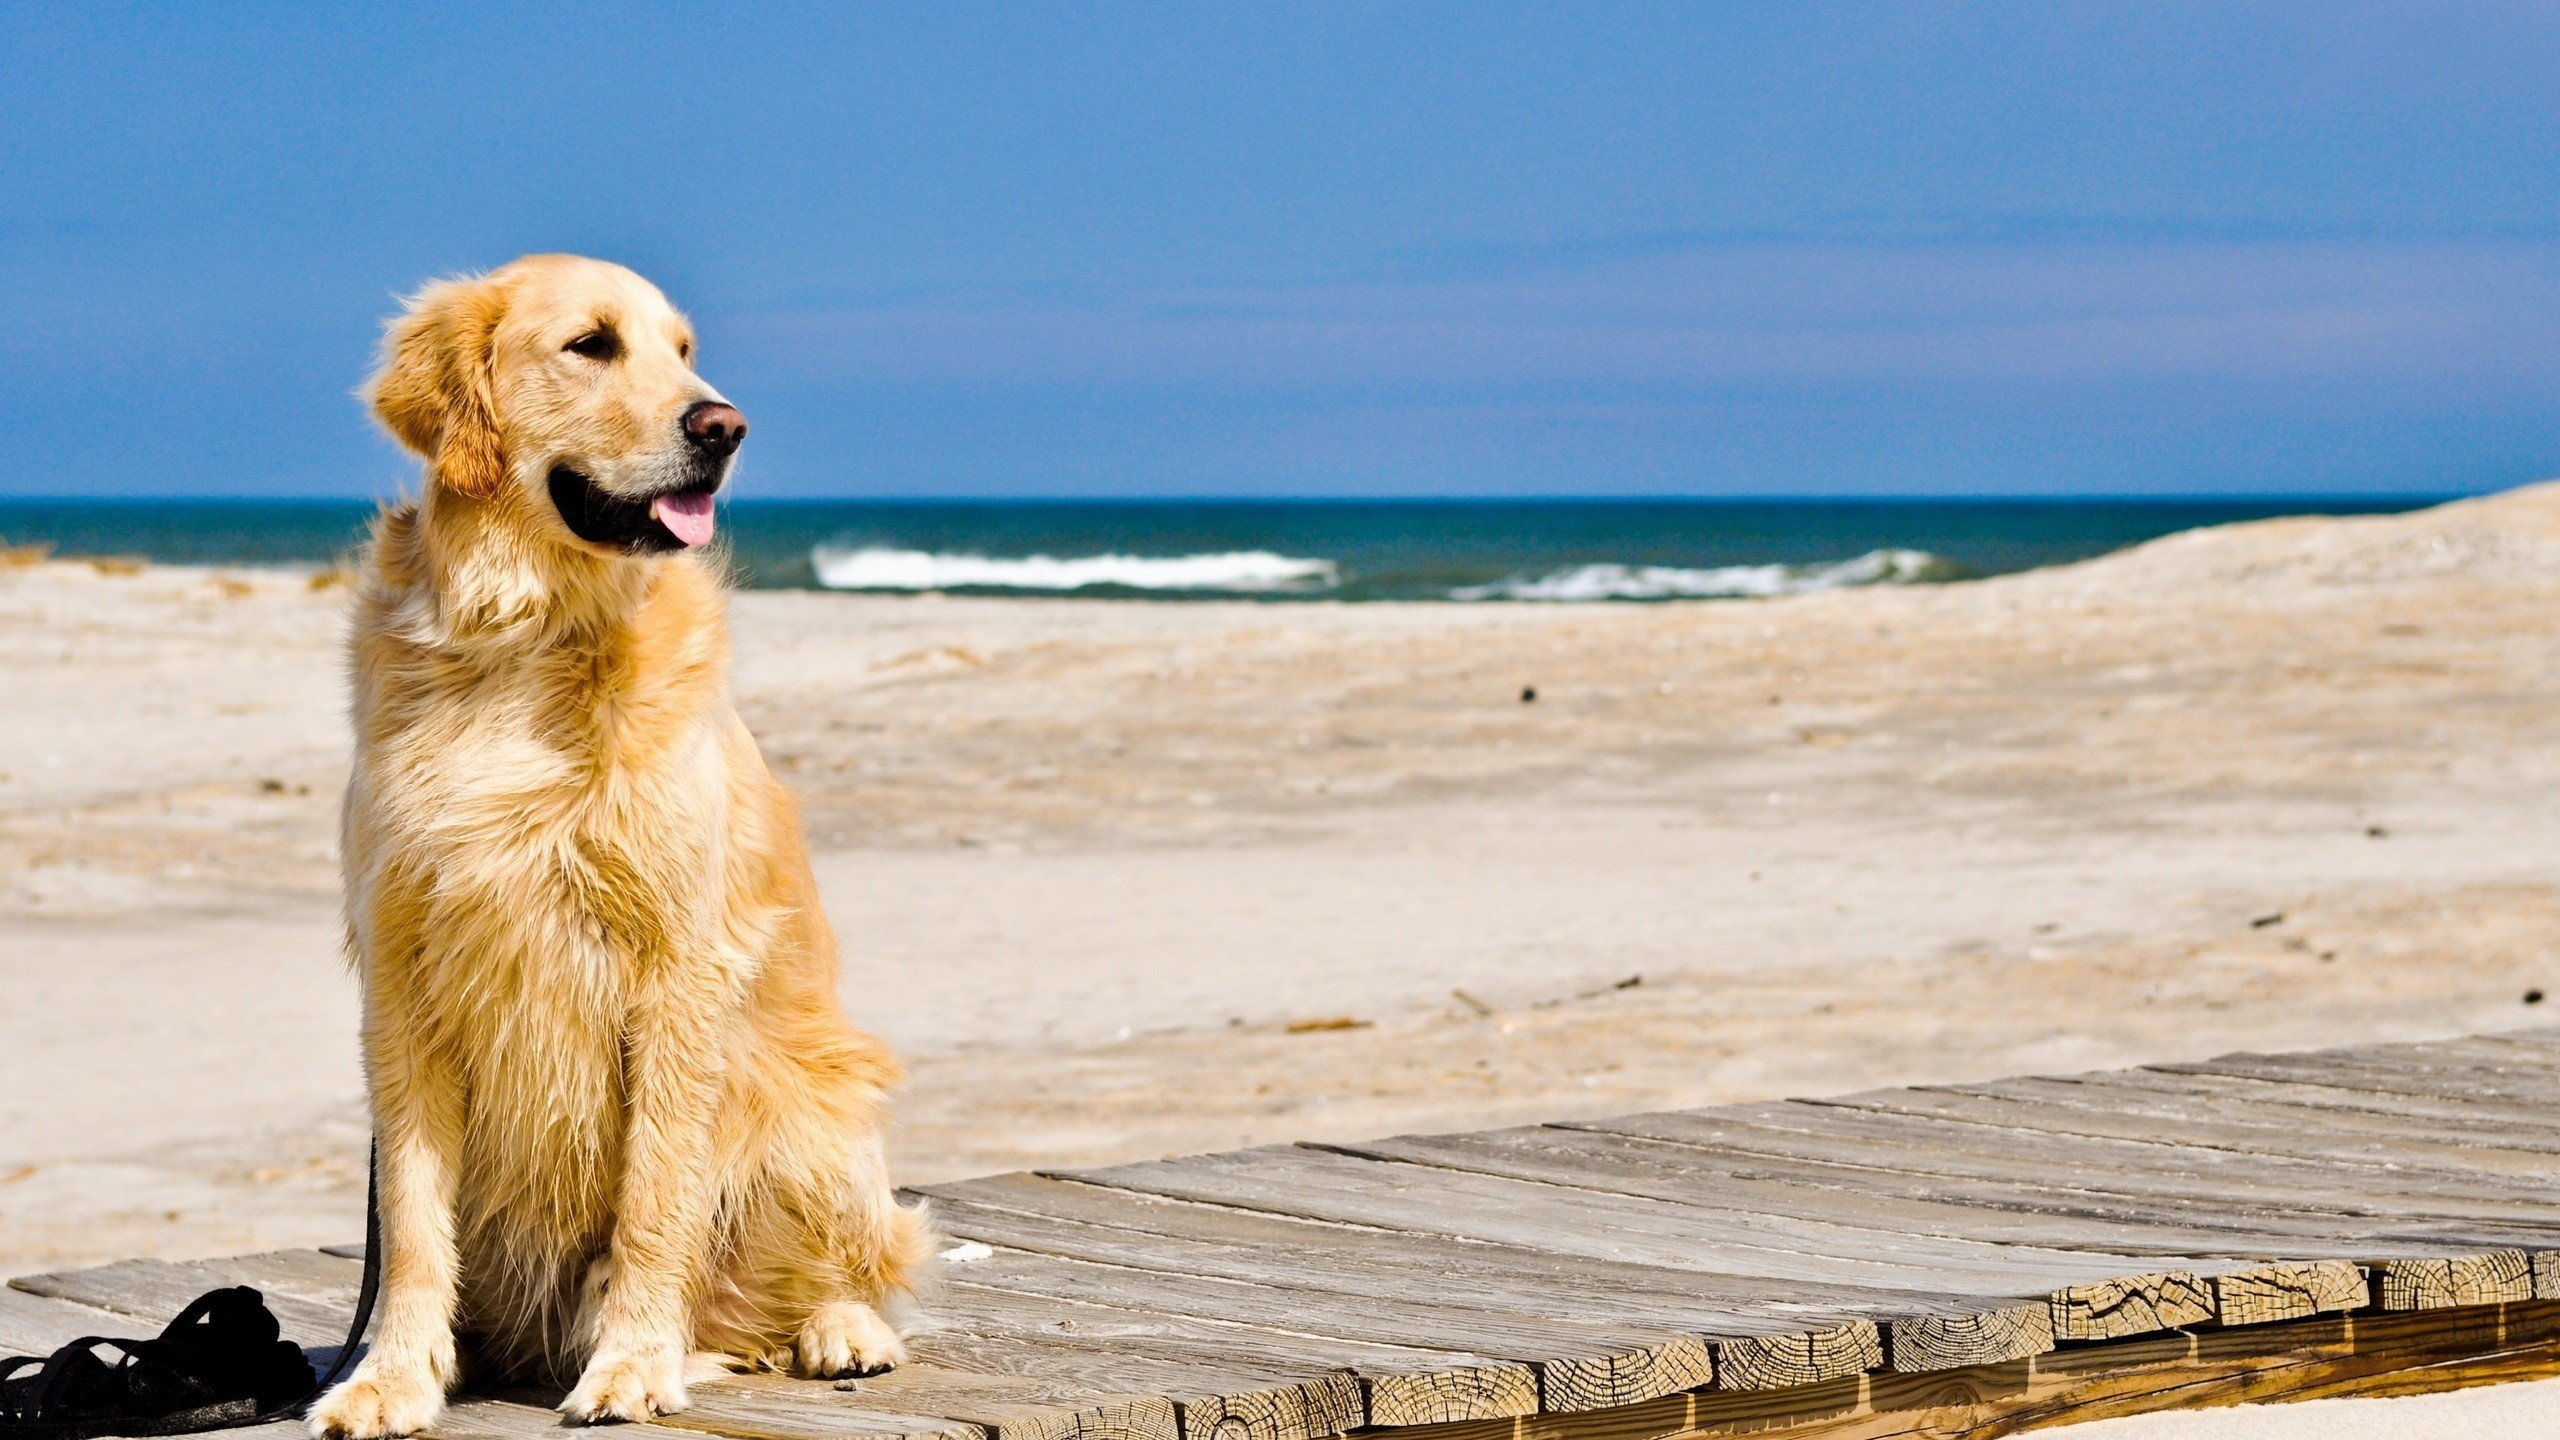 Free download Golden Retriever wallpaper ID:211763 hd 2560x1440 for PC